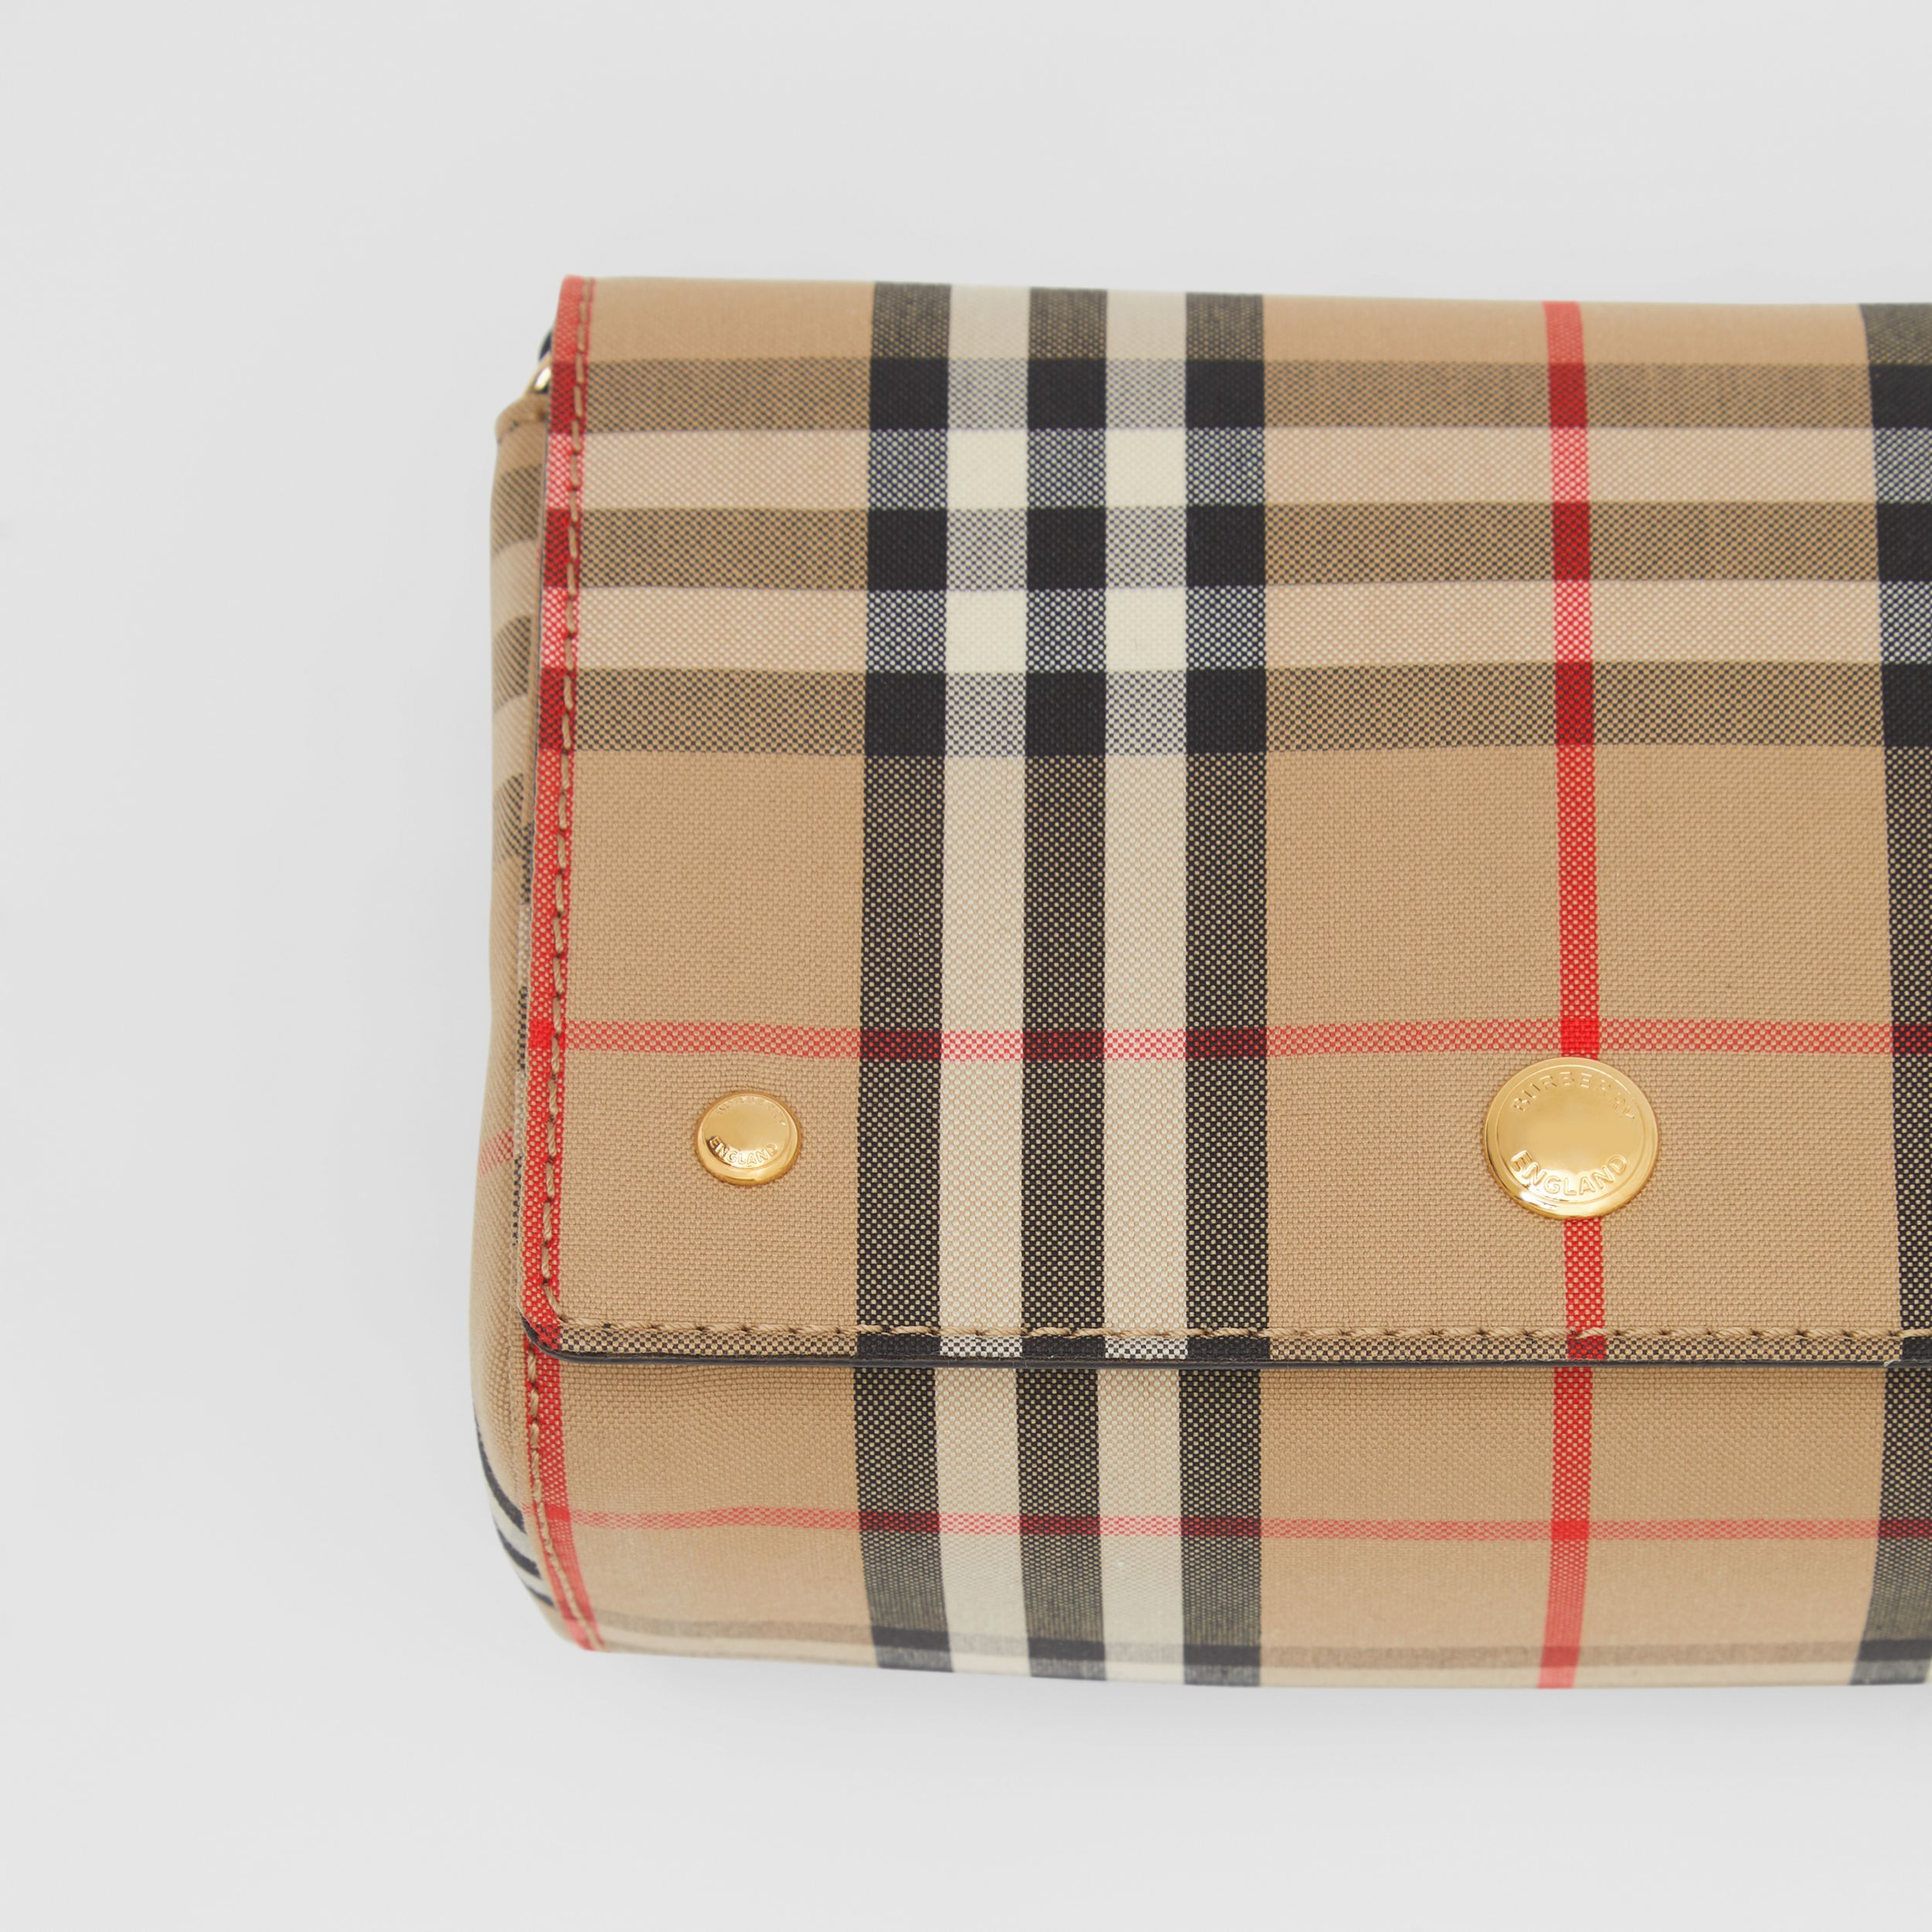 Small Vintage Check and Leather Crossbody Bag in Archive Beige - Women | Burberry - 2